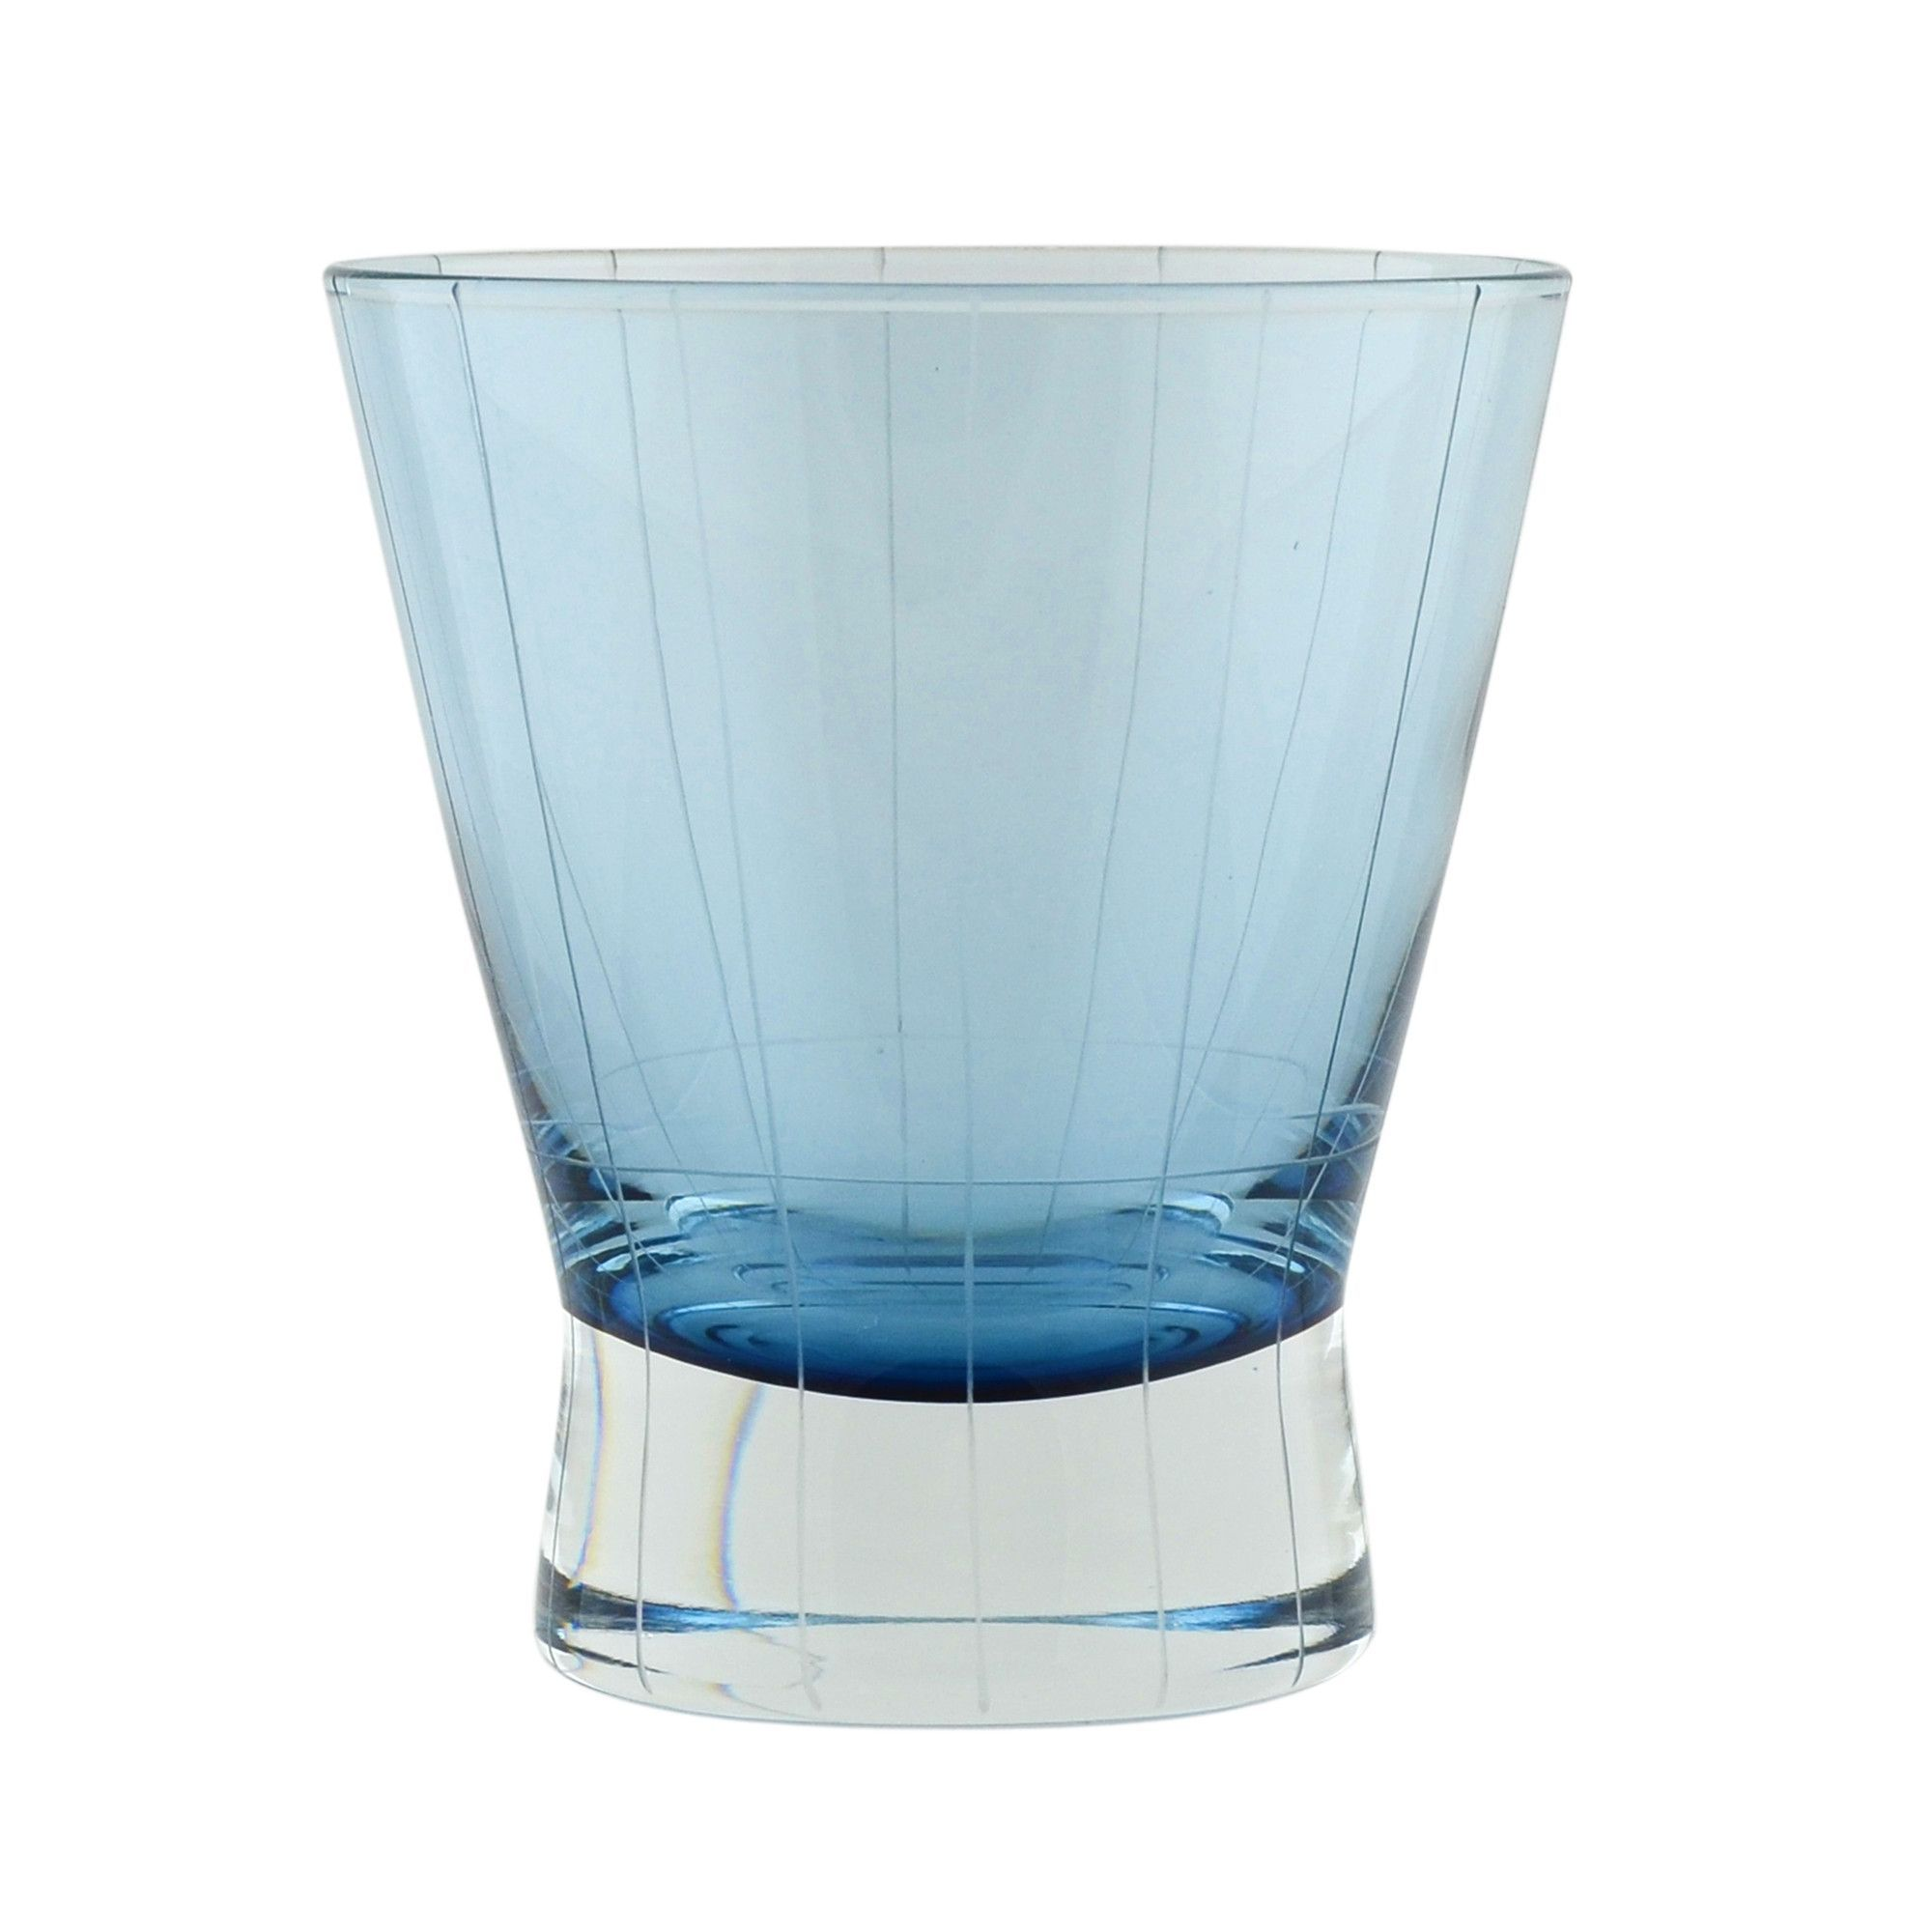 Crete Etched 8 Oz. Double Old Fashioned Glass (Set of 6